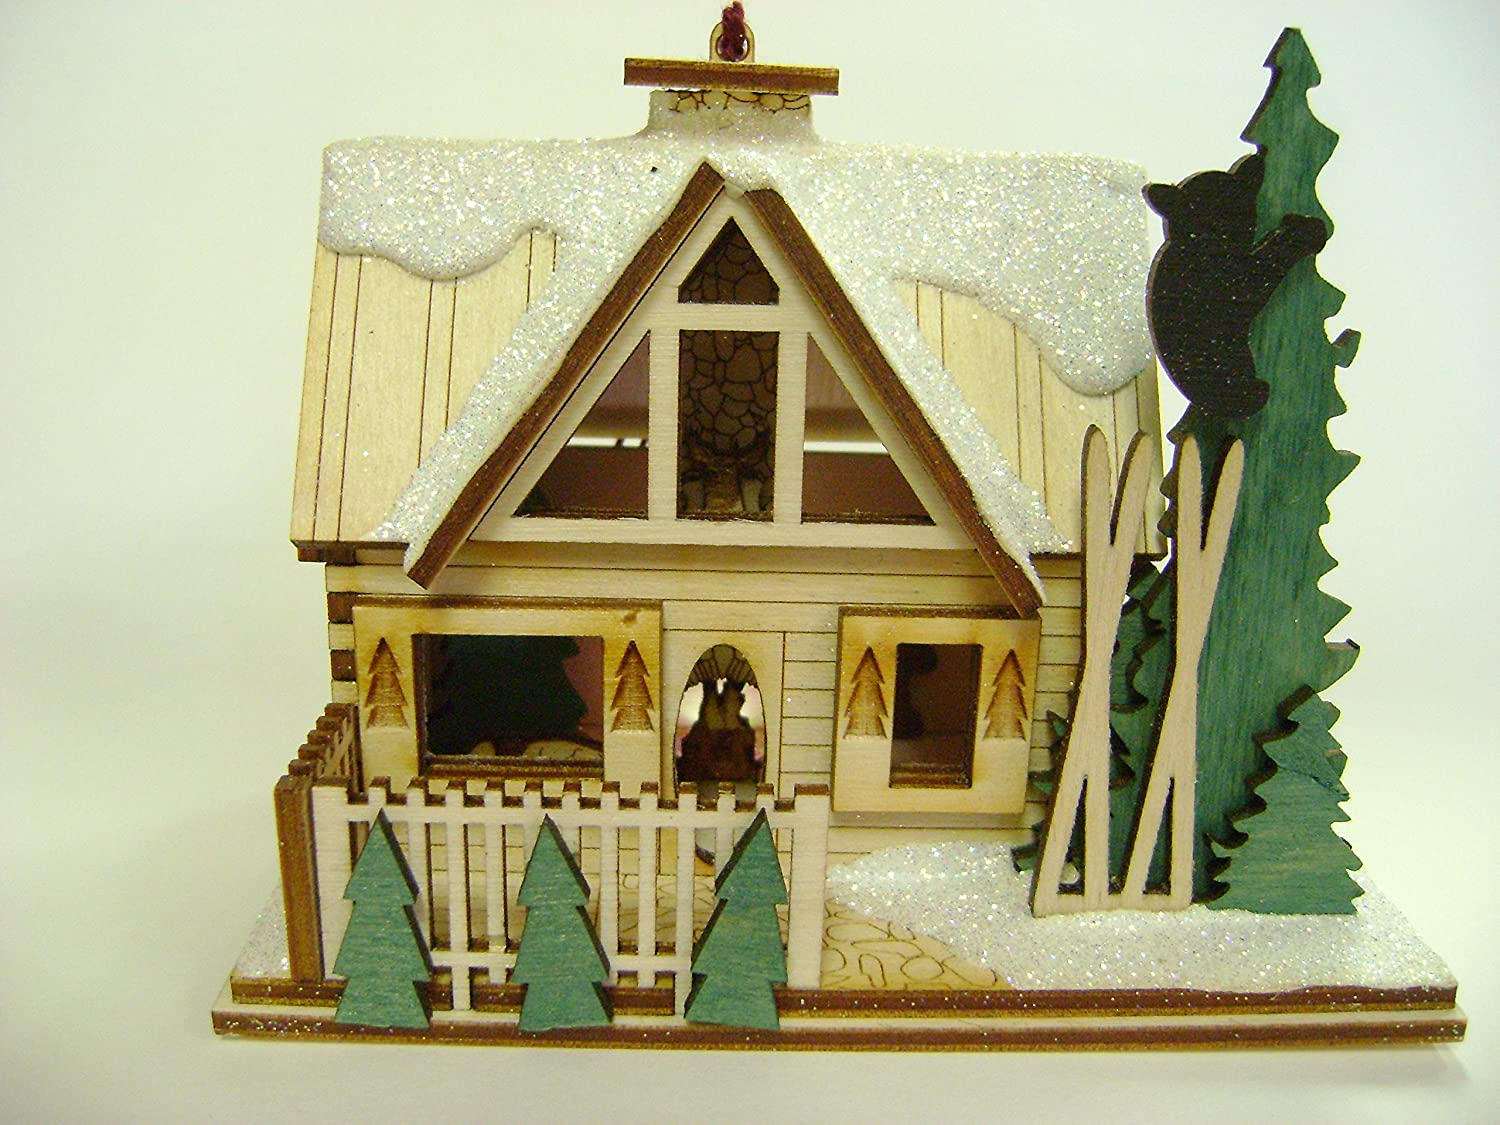 Ginger Cottages - Santa's Ski Lodge GC126, Miniature Collectable building for Christmas and holiday displays. Wood table top display or ornament. Hand crafted in the Richmond Virginia, USA area. TRC Designs